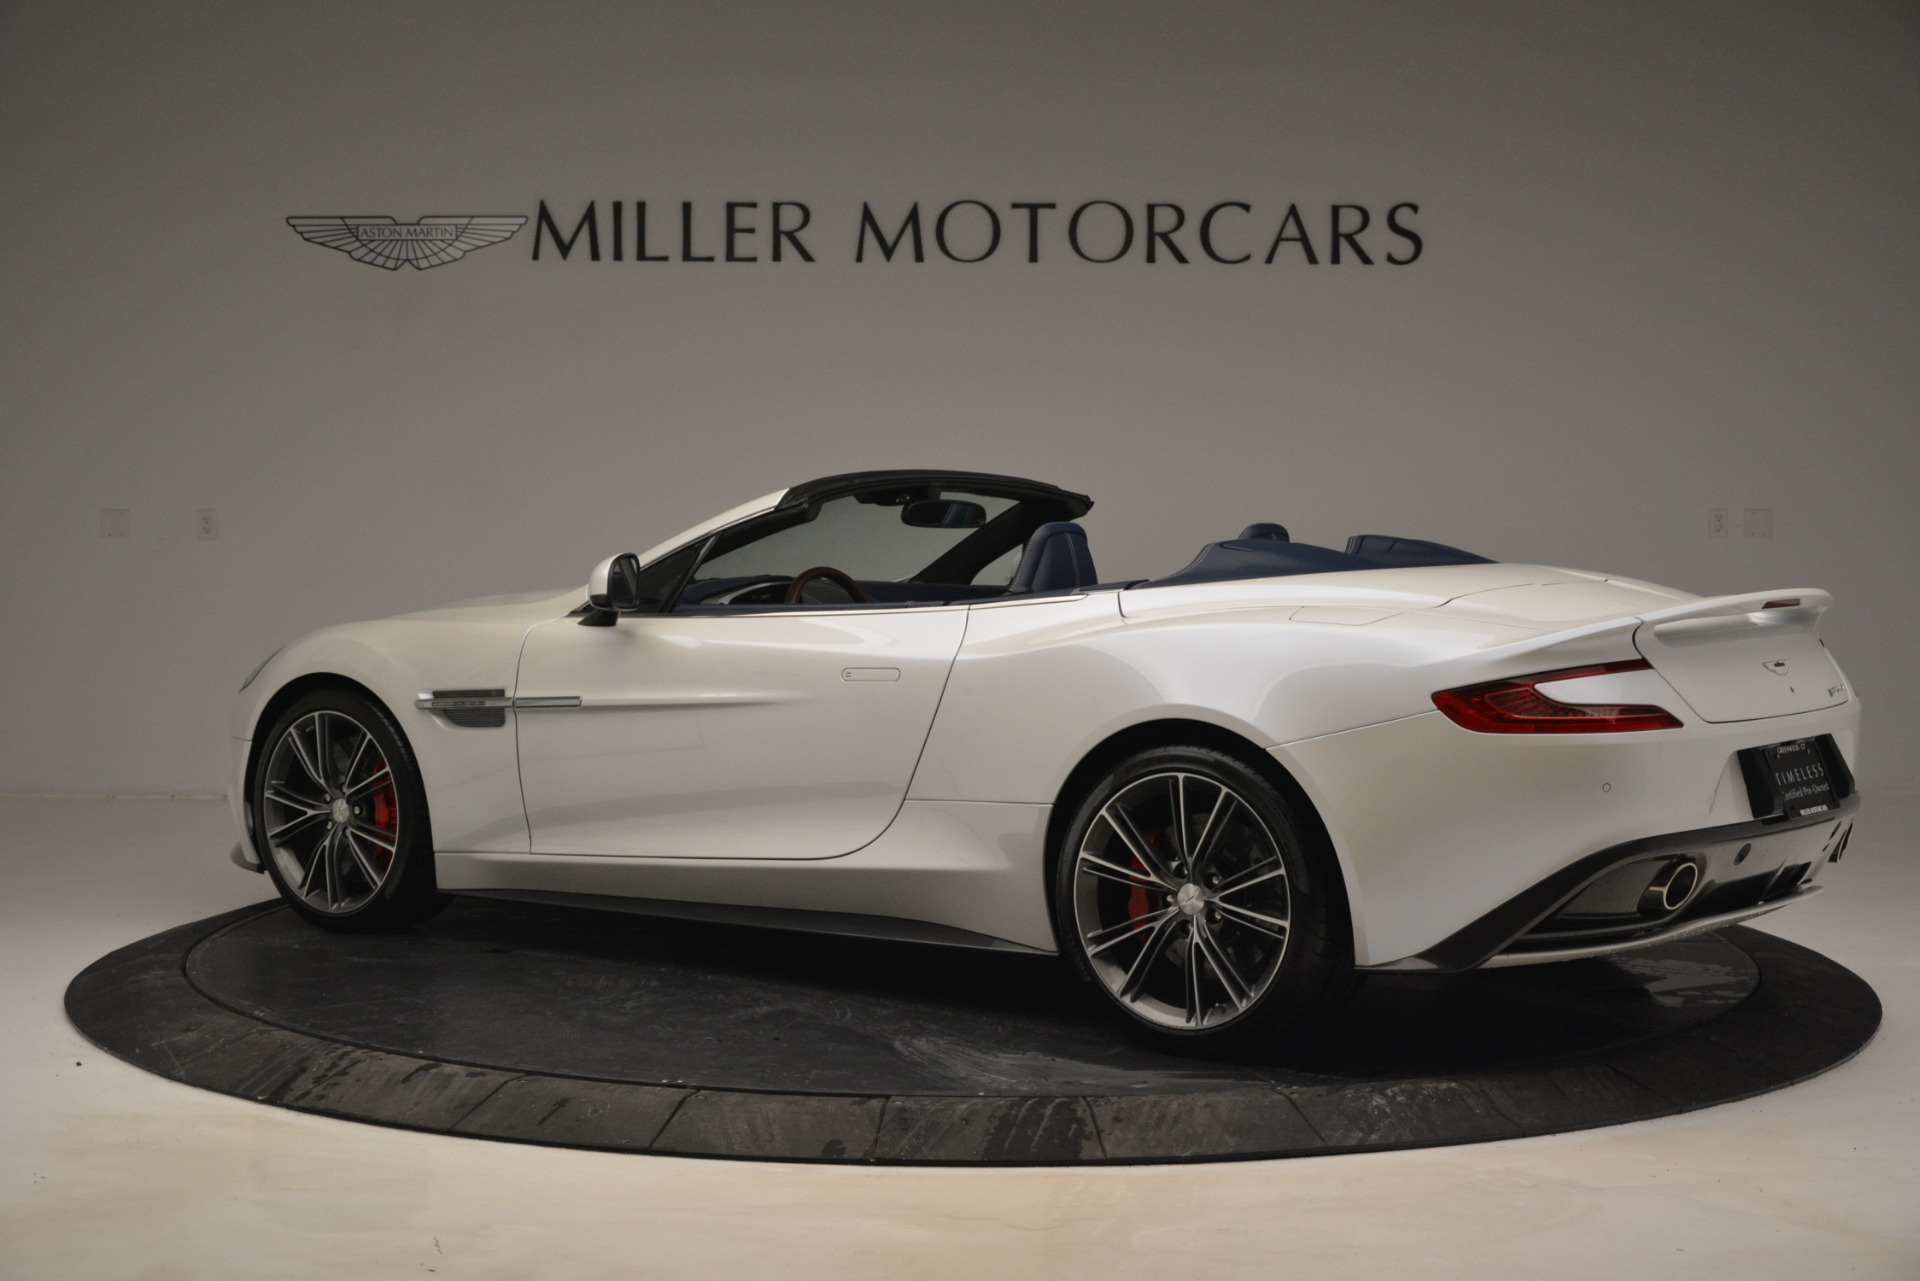 Used 2015 Aston Martin Vanquish Convertible For Sale In Westport, CT 2982_p4